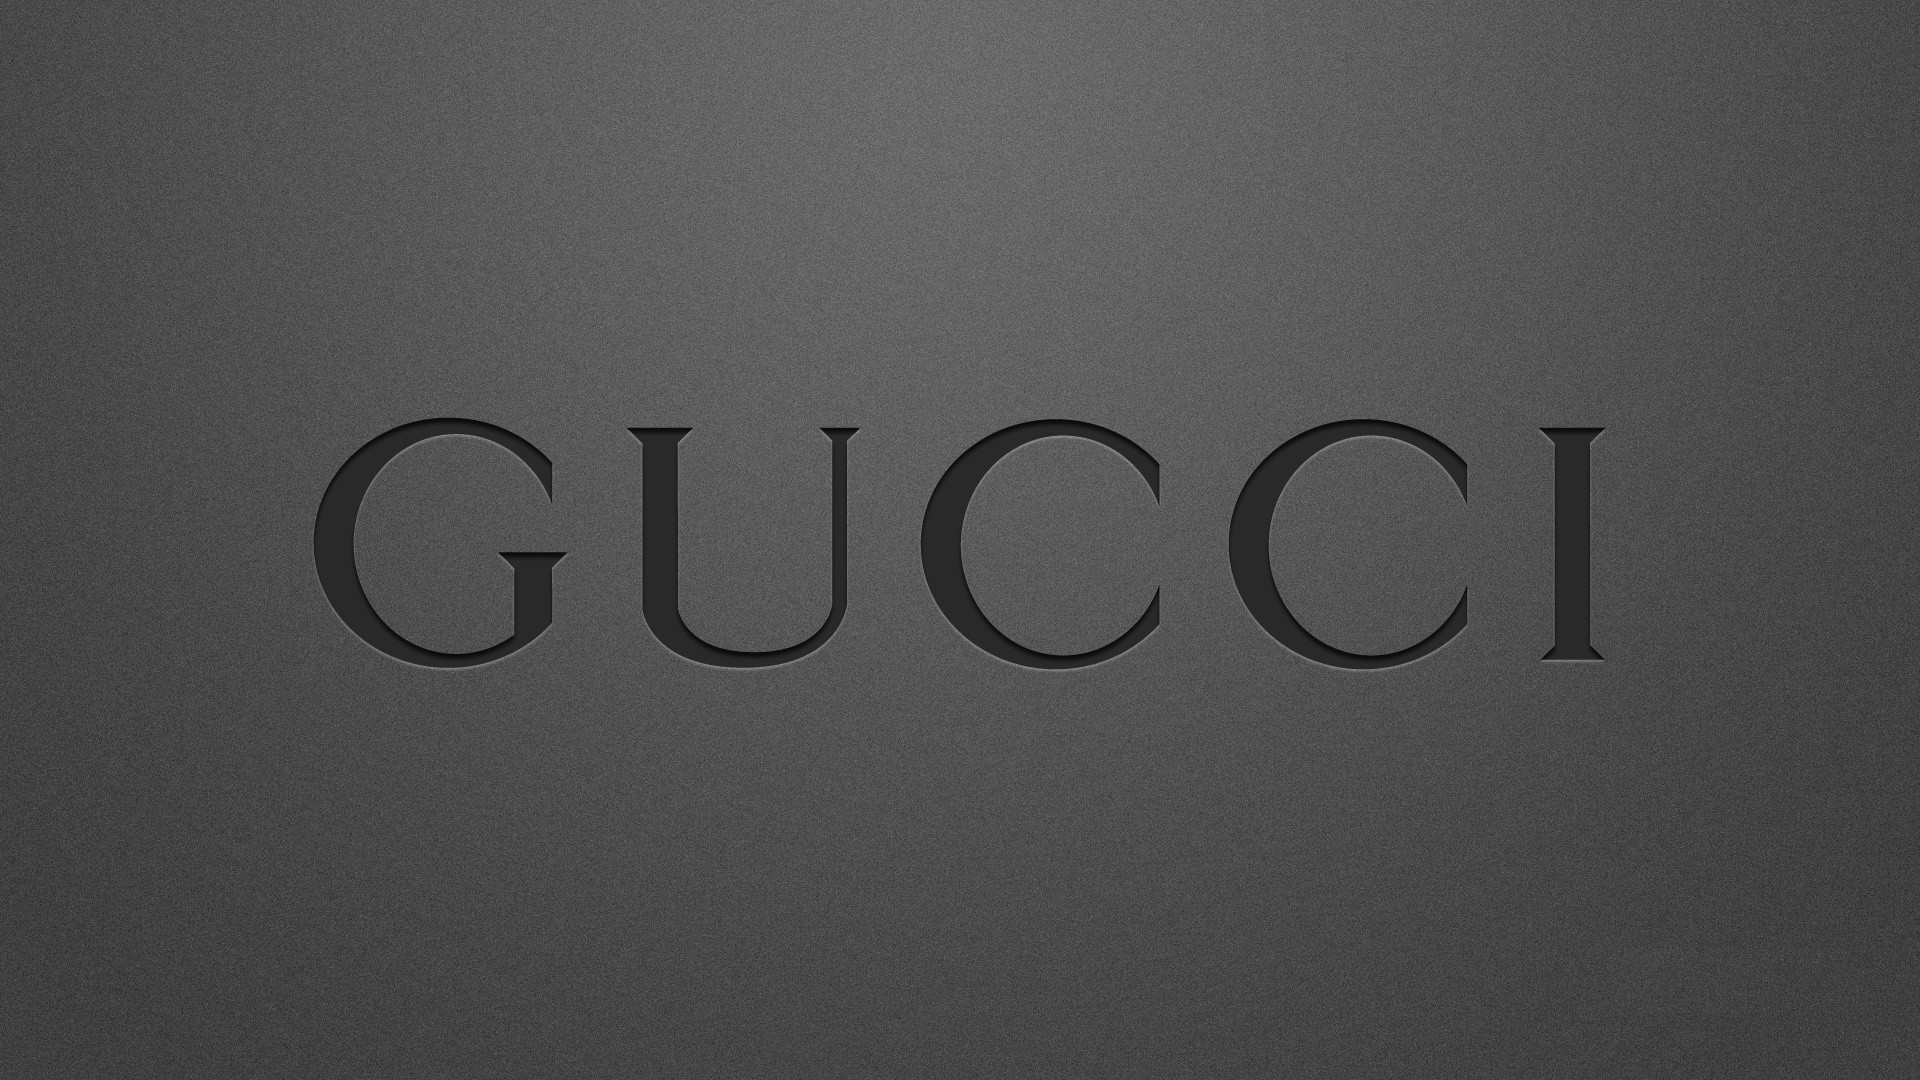 Gucci Wallpaper For Computer HD High Definition Background 1920x1080